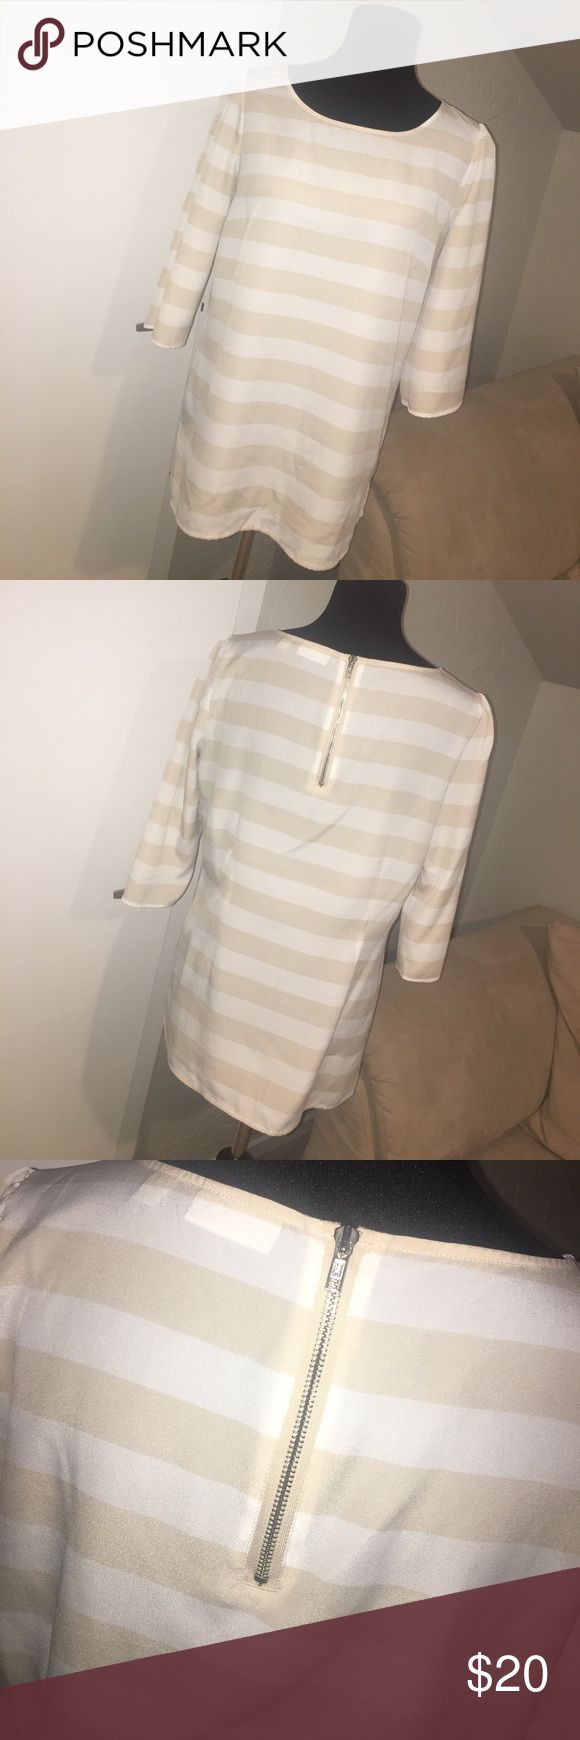 Cream & white striped blouse with zipper detail Cream & white striped blouse with zipper detail. Slightly puckered shoulders for very feminine touch! New York & Company Tops Blouses